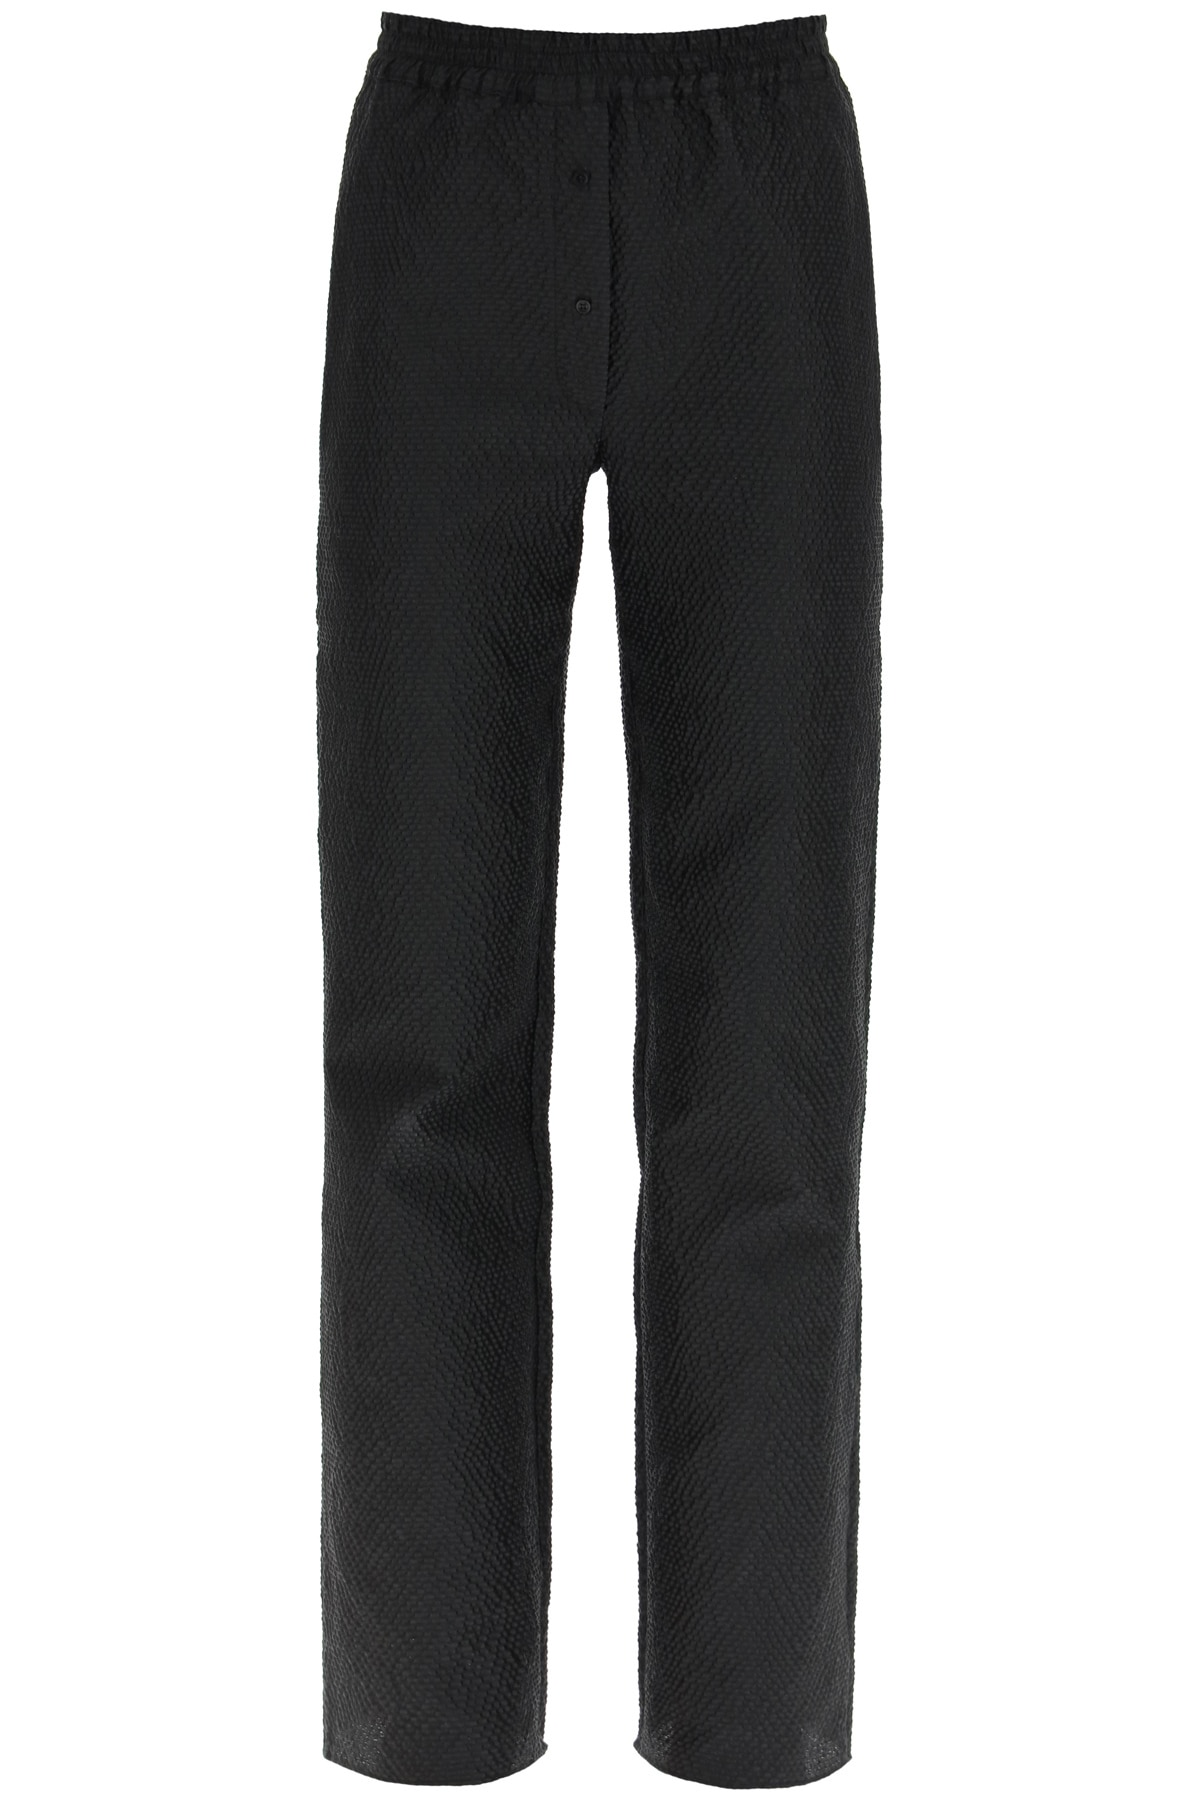 Cecilie Bahnsen AMBER TROUSERS